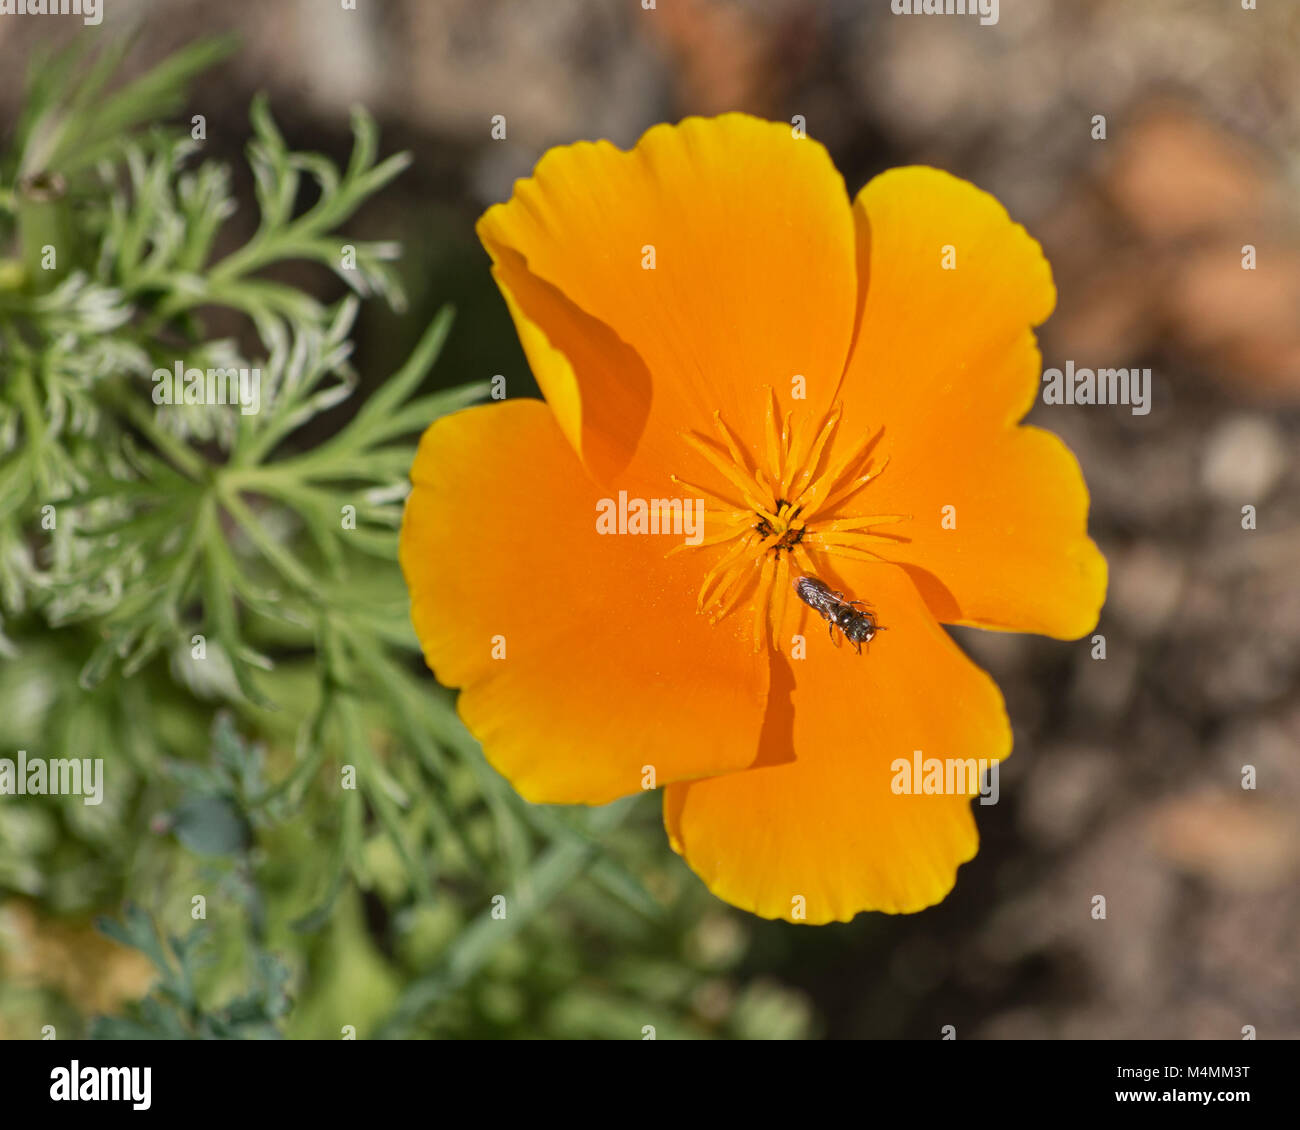 Golden california poppy flower with small insect stock photo golden california poppy flower with small insect mightylinksfo